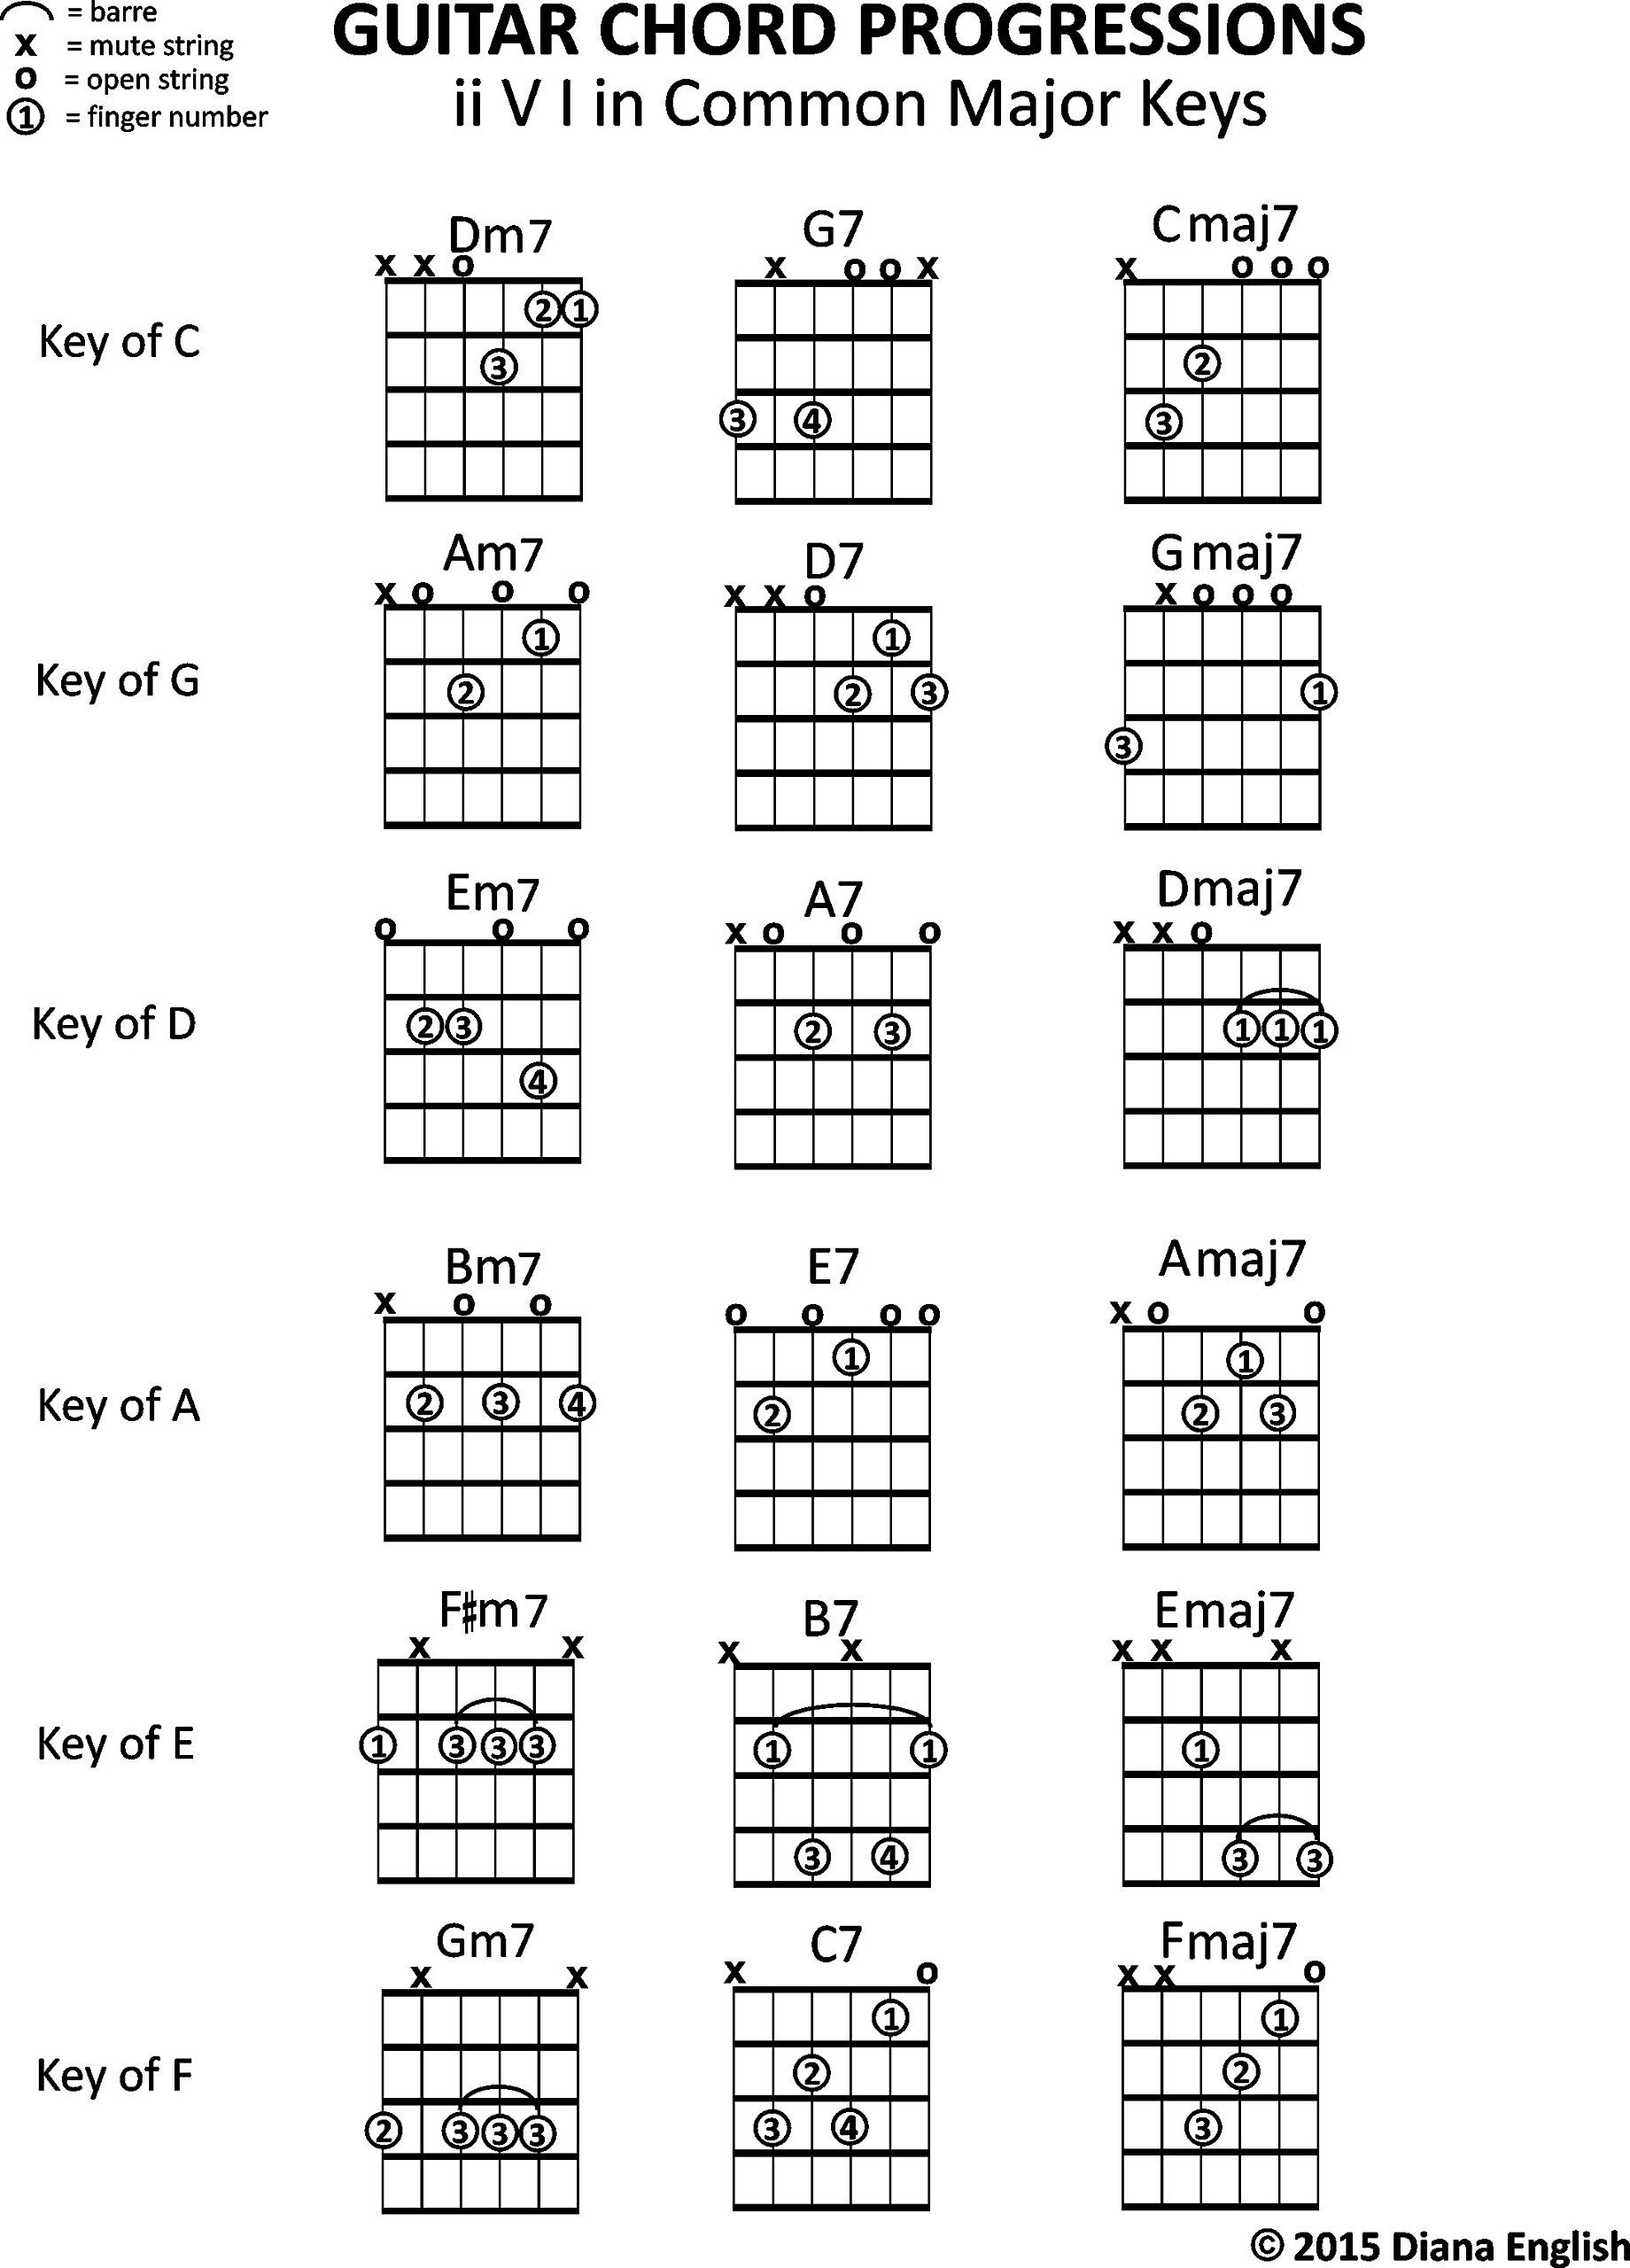 Buy Guitar Chord Progressions Ii V I In Major Keys Music Stand